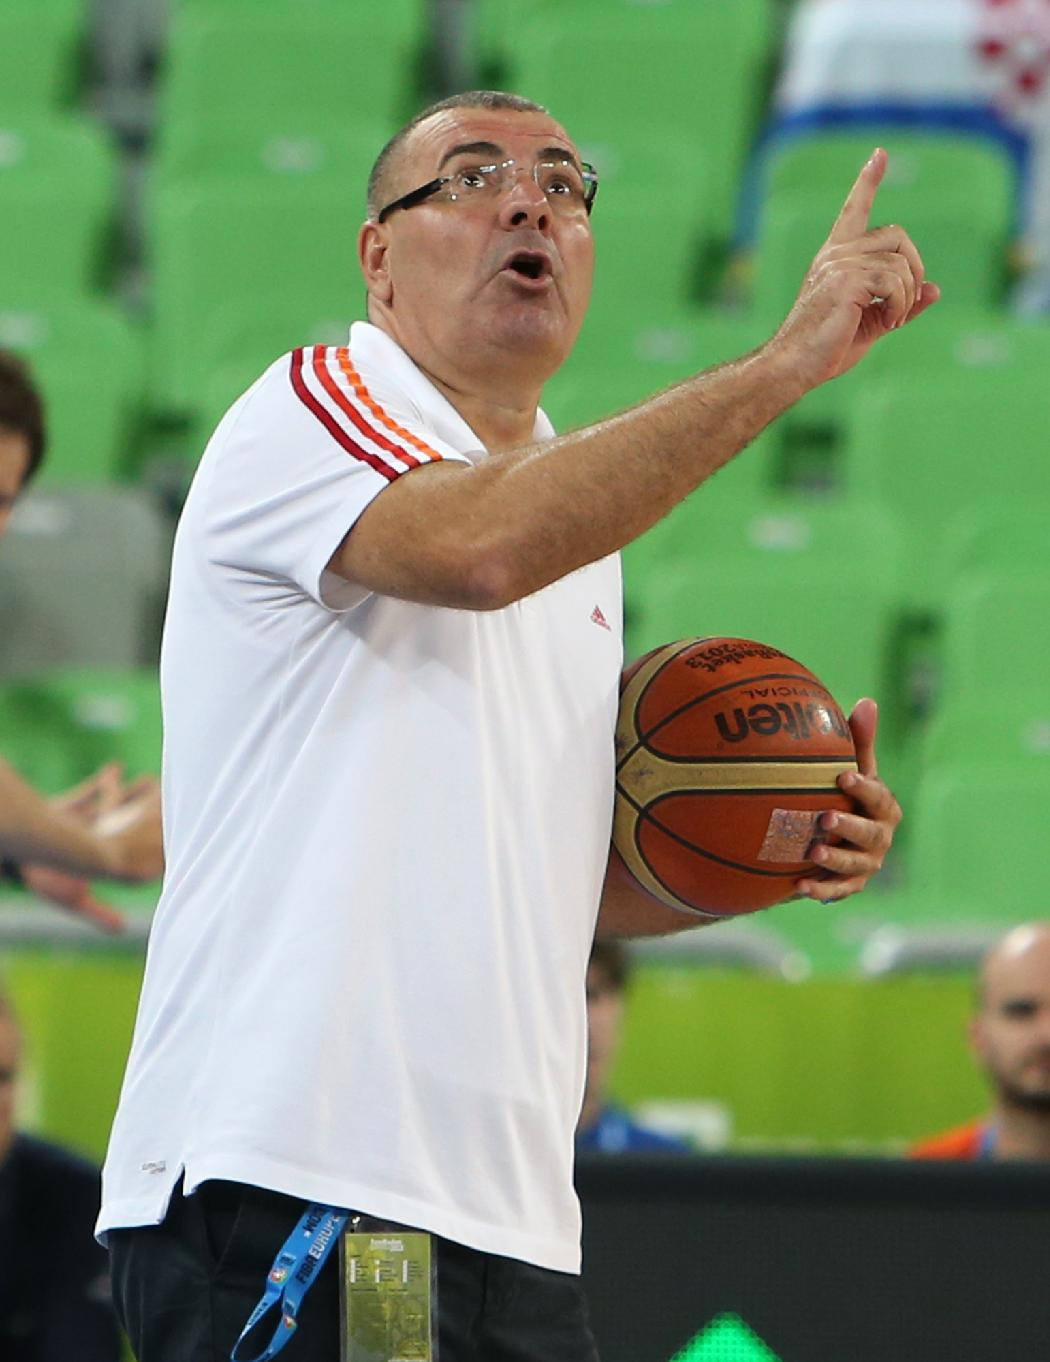 Croatia's head coach Jasmin Repesa speaks to the referee, unseen, as he holds the ball during a EuroBasket European Basketball Championship Group F match against Finland at the Stozice Arena, in Ljubljana, Slovenia, Thursday, Sept. 12, 2013